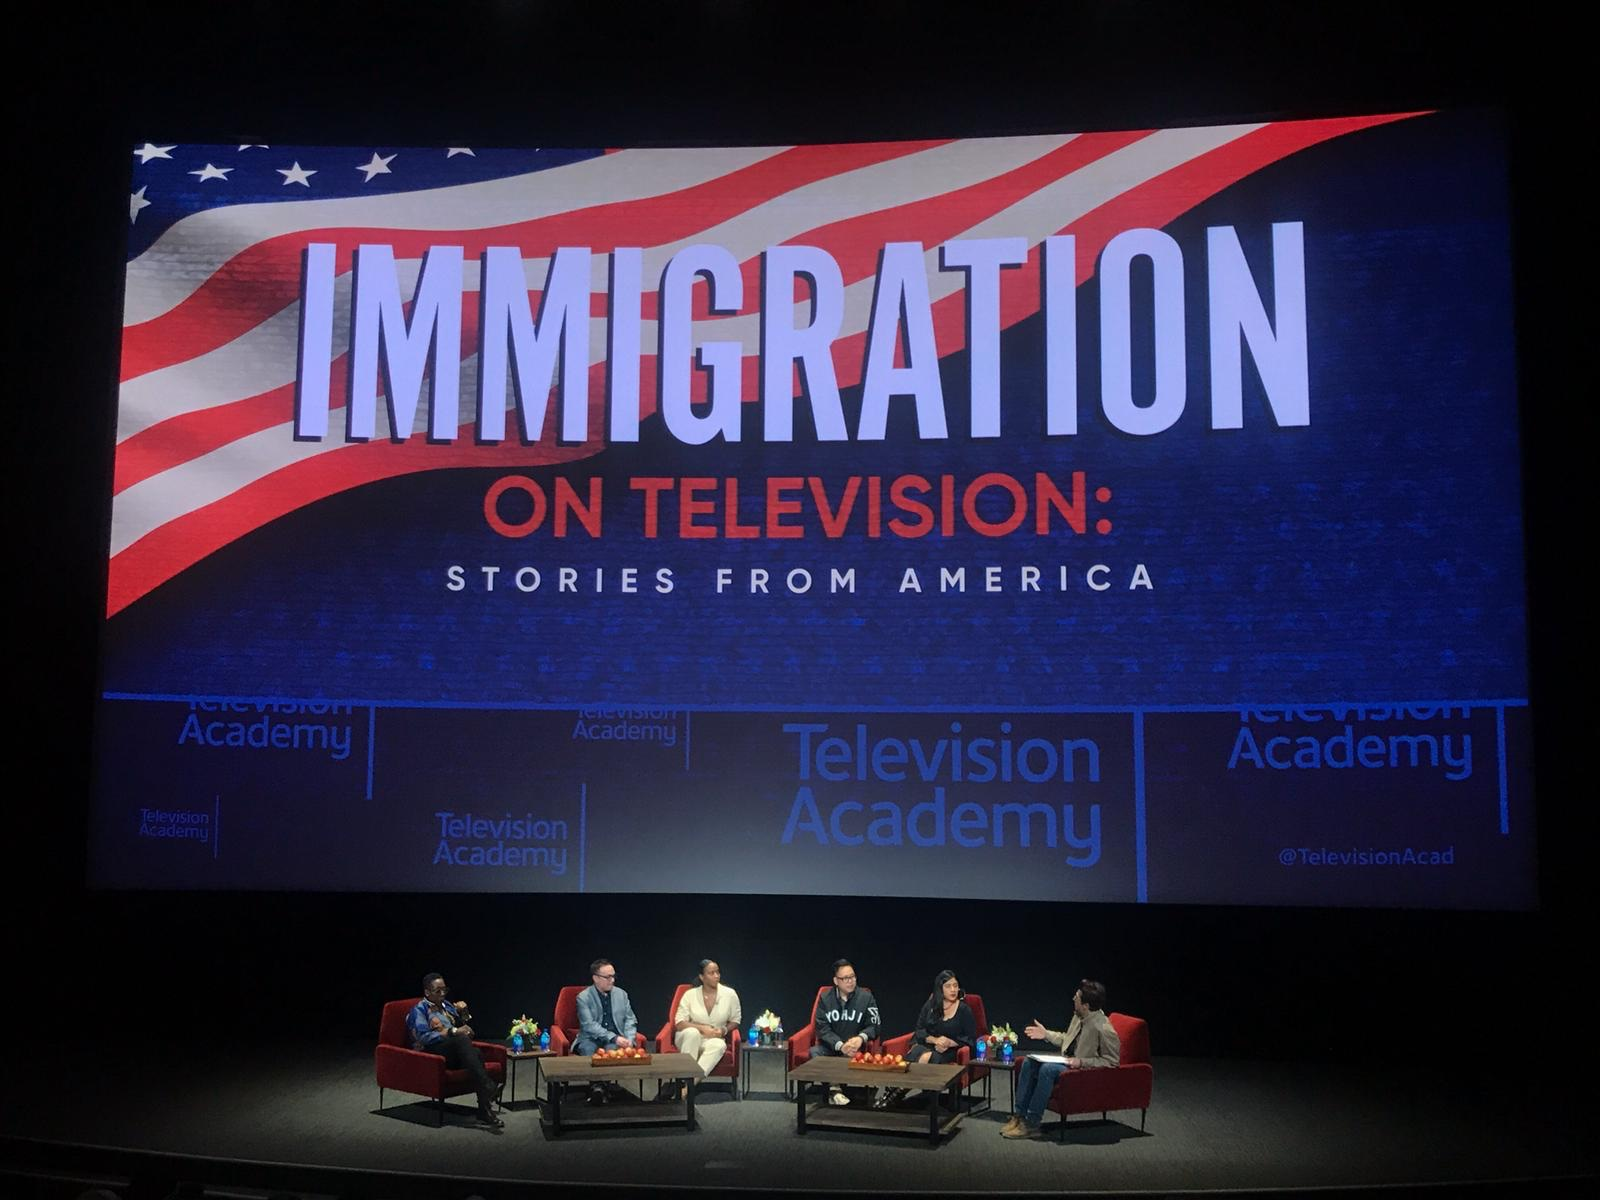 Noelle Lindsay Stewart speaking on a panel at Television Academy.